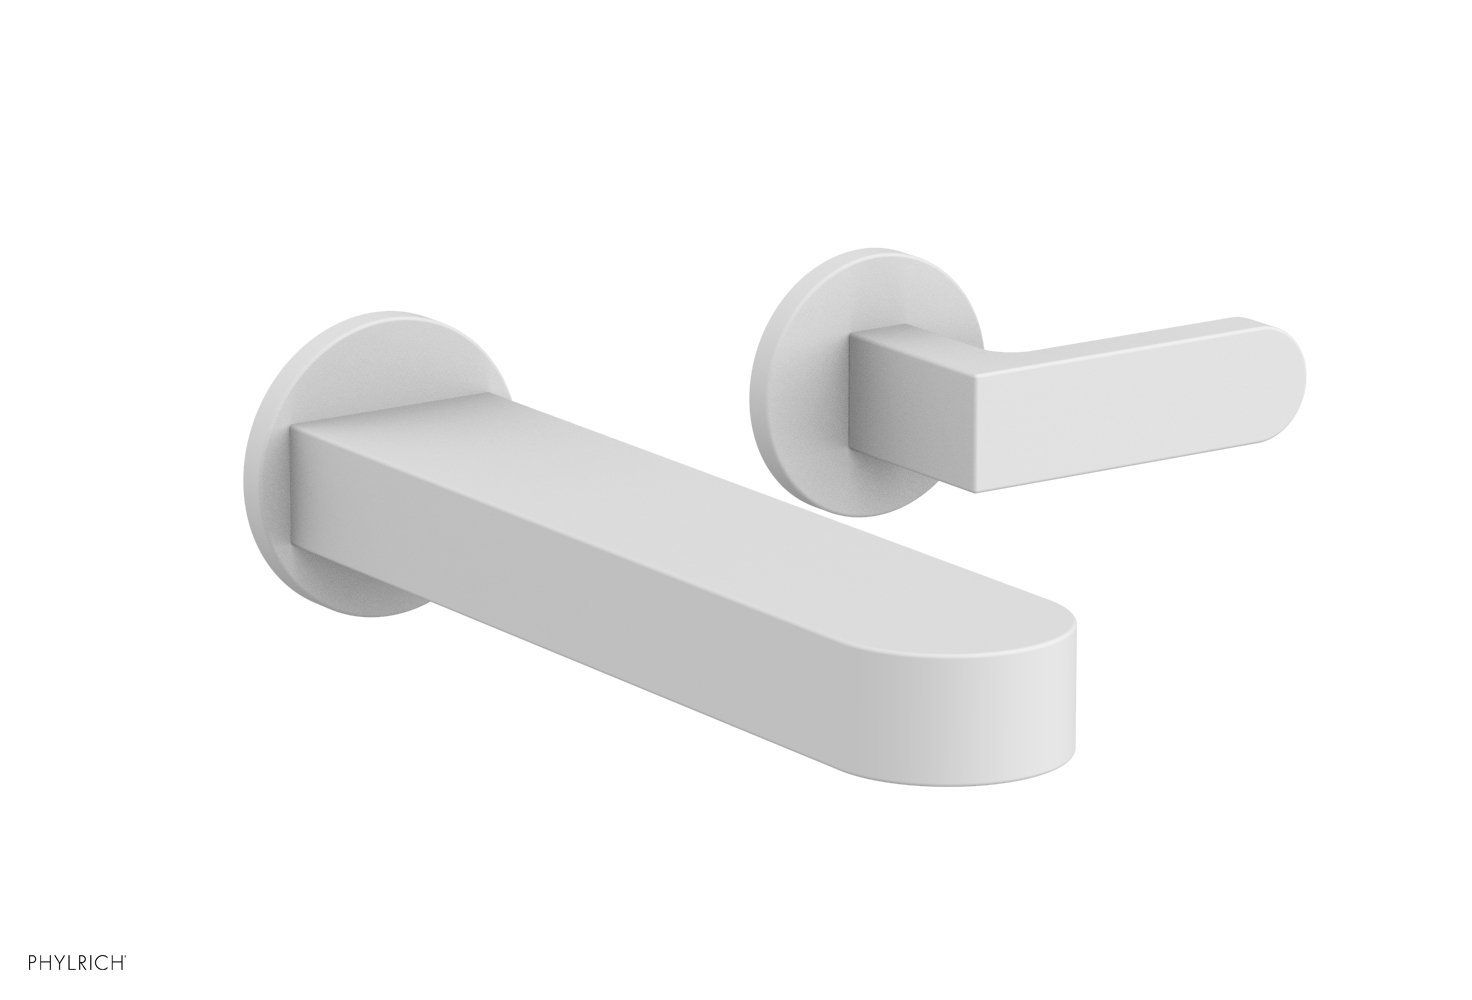 Phylrich 183-16-050 ROND Single Handle Wall Lavatory Set - Lever Handles - Satin White